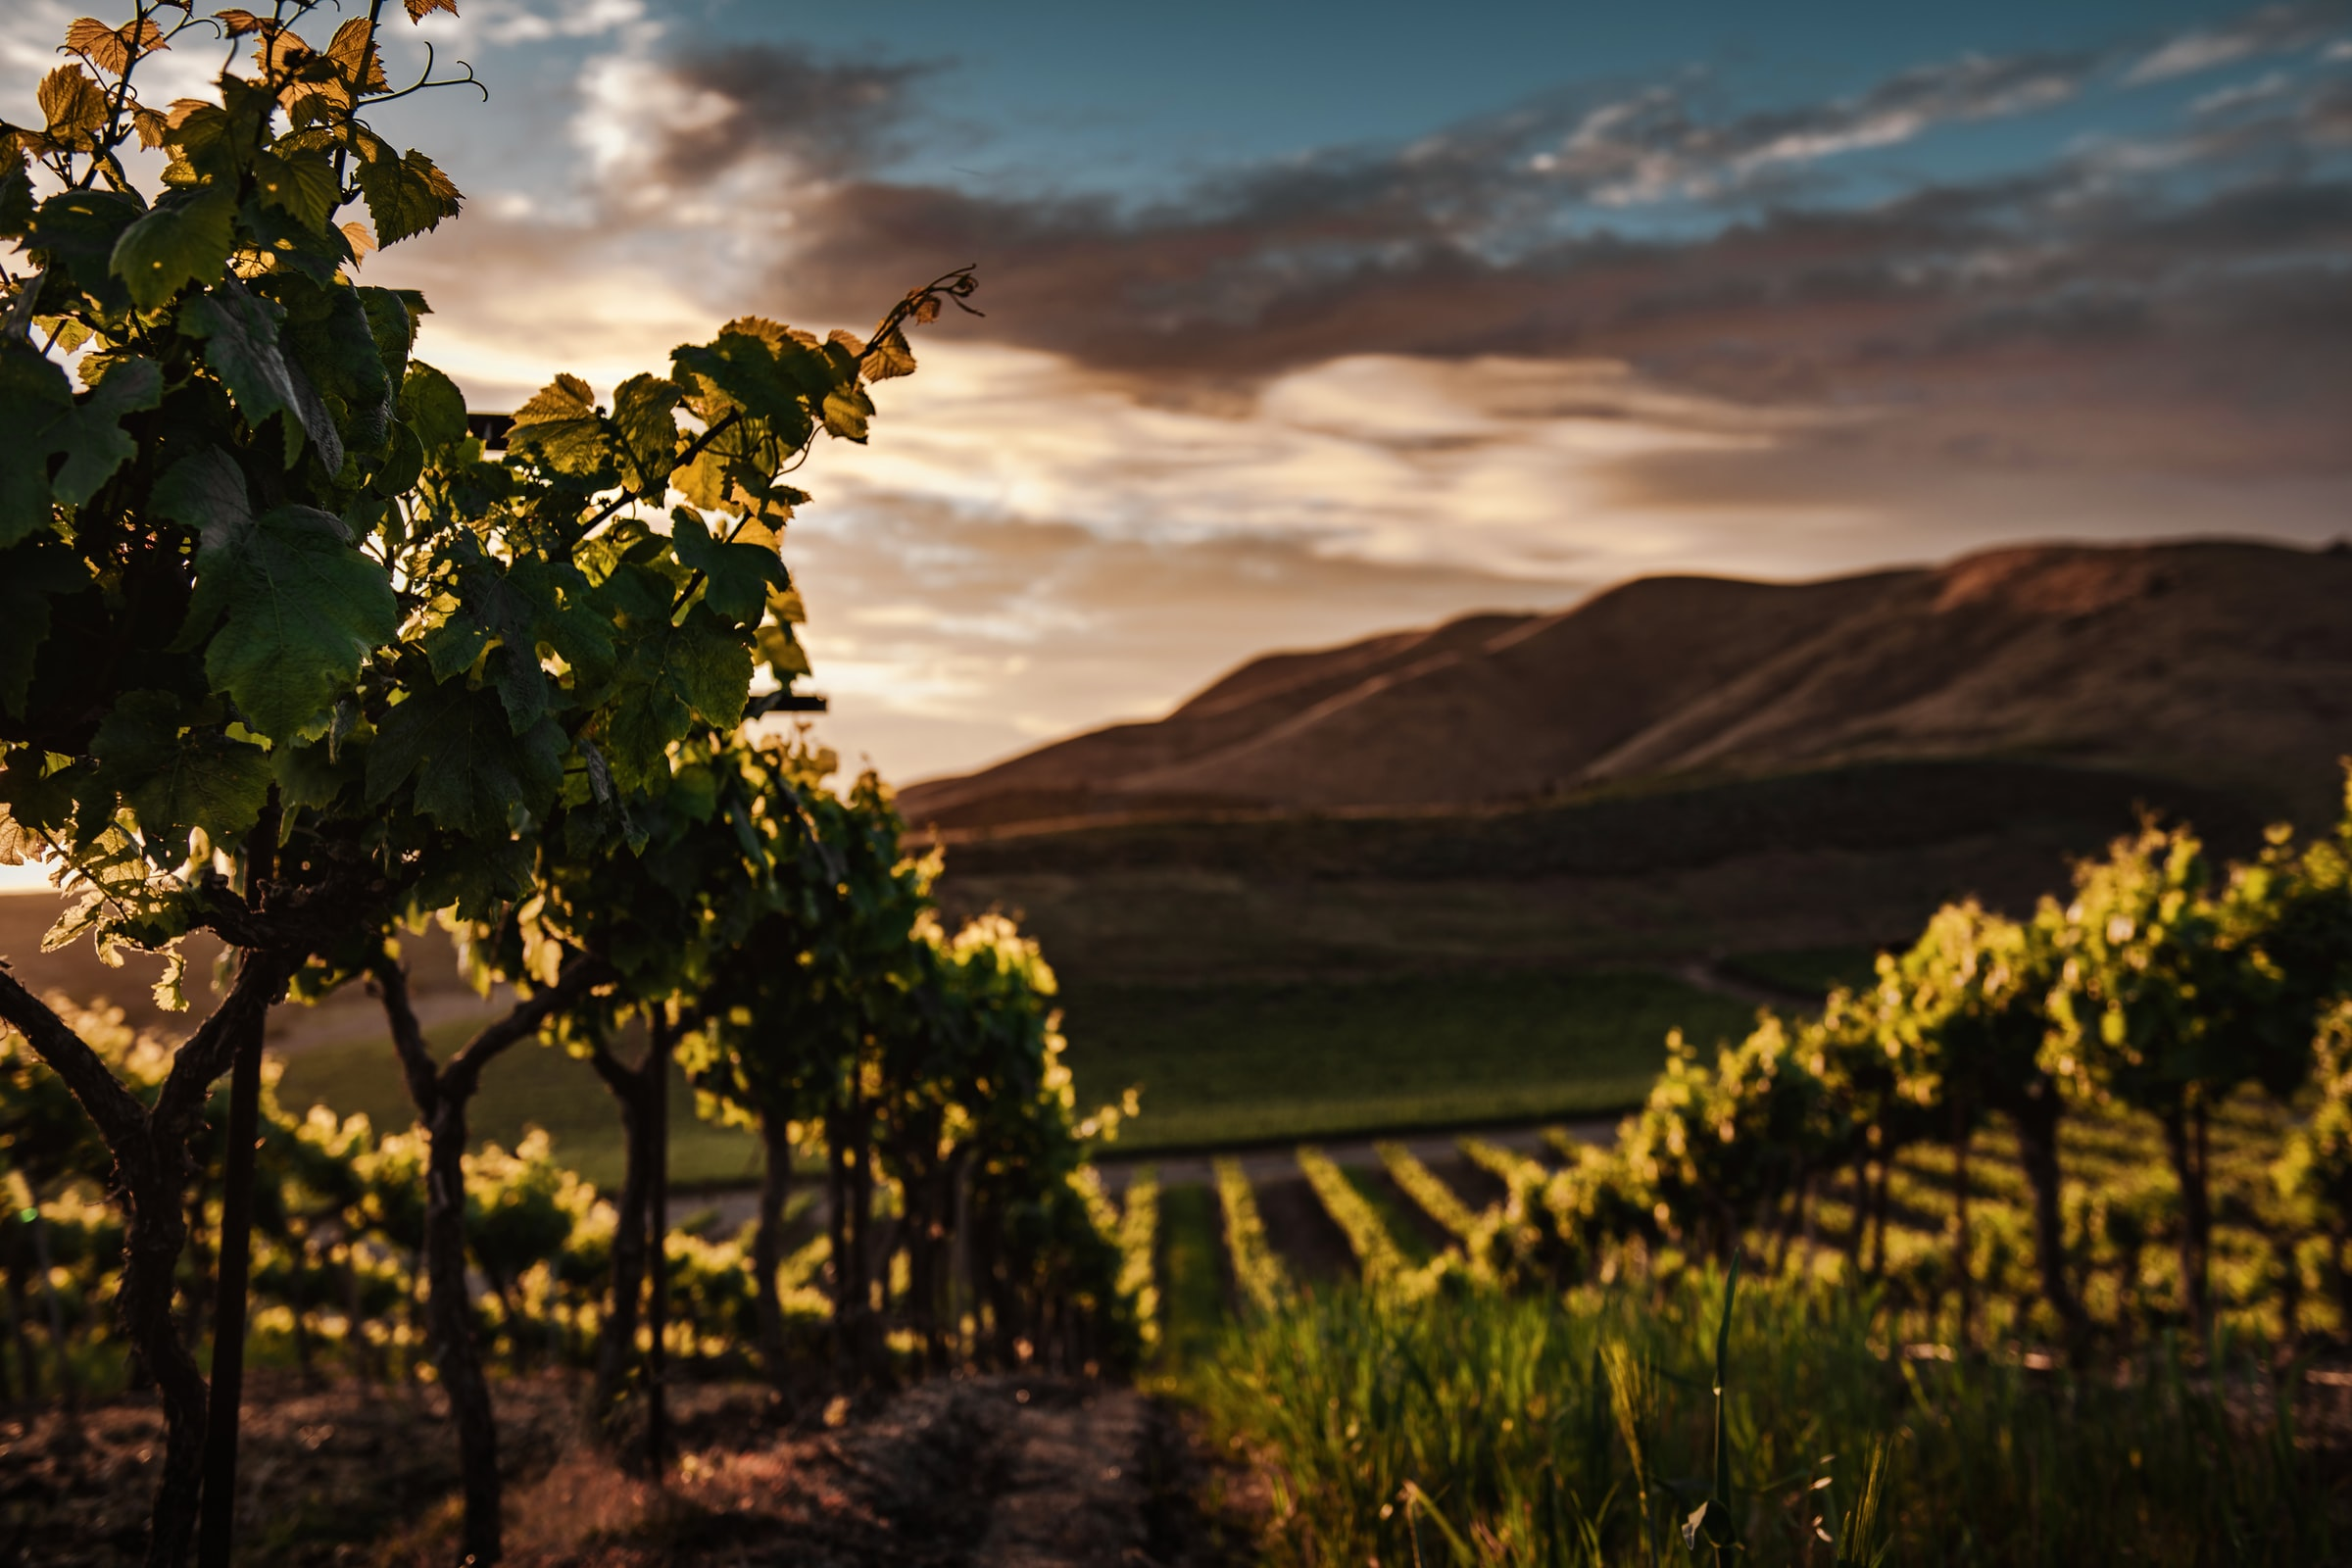 The World's Most Beautiful Wineries Revealed